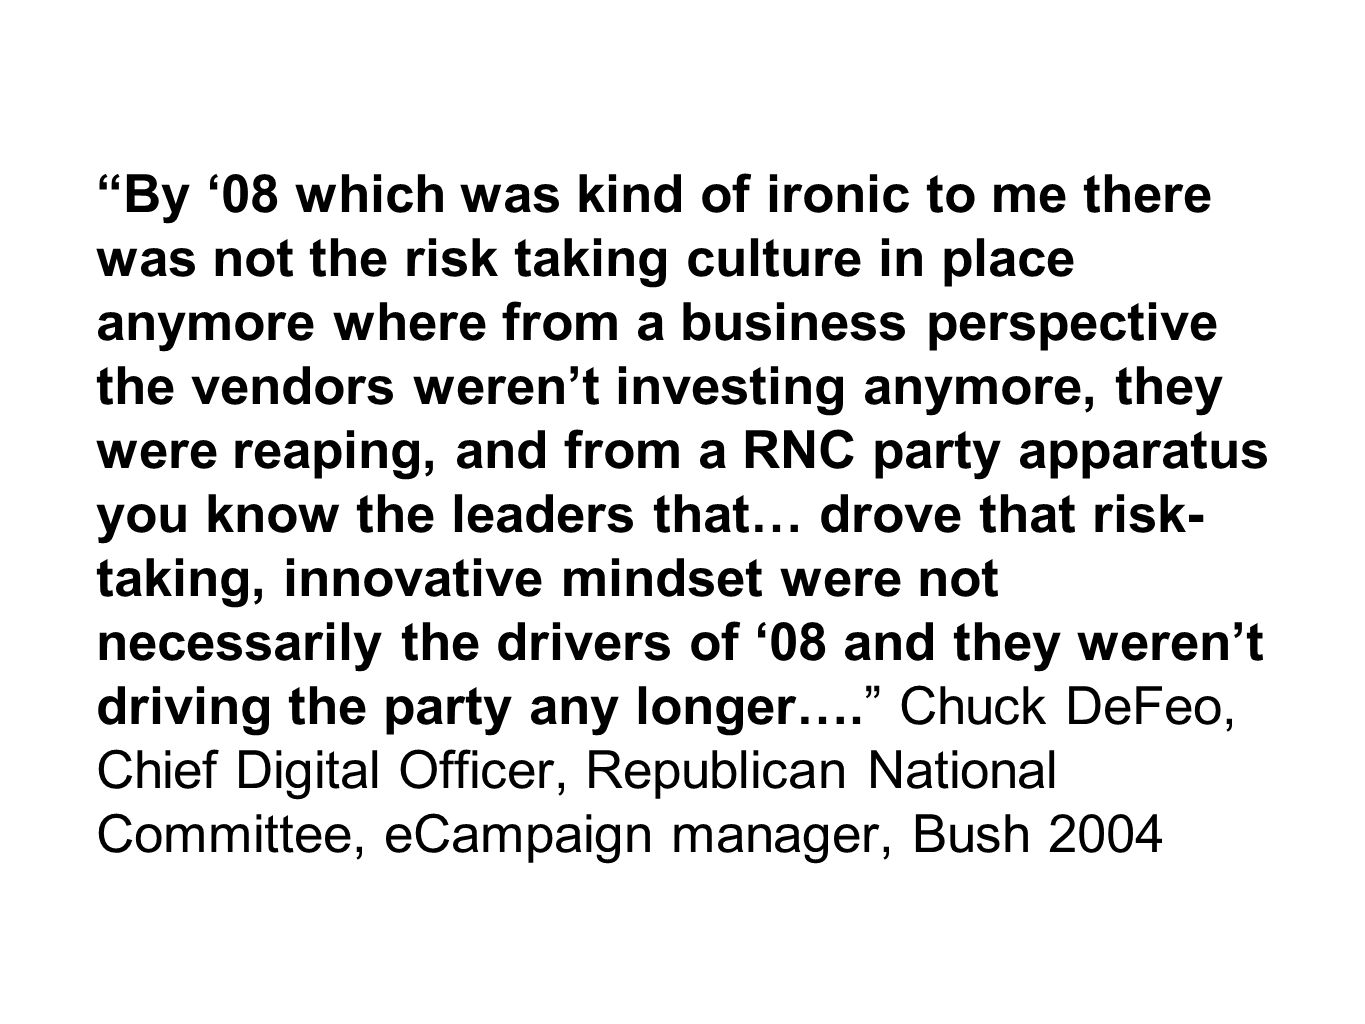 By '08 which was kind of ironic to me there was not the risk taking culture in place anymore where from a business perspective the vendors weren't investing anymore, they were reaping, and from a RNC party apparatus you know the leaders that… drove that risk- taking, innovative mindset were not necessarily the drivers of '08 and they weren't driving the party any longer…. Chuck DeFeo, Chief Digital Officer, Republican National Committee, eCampaign manager, Bush 2004